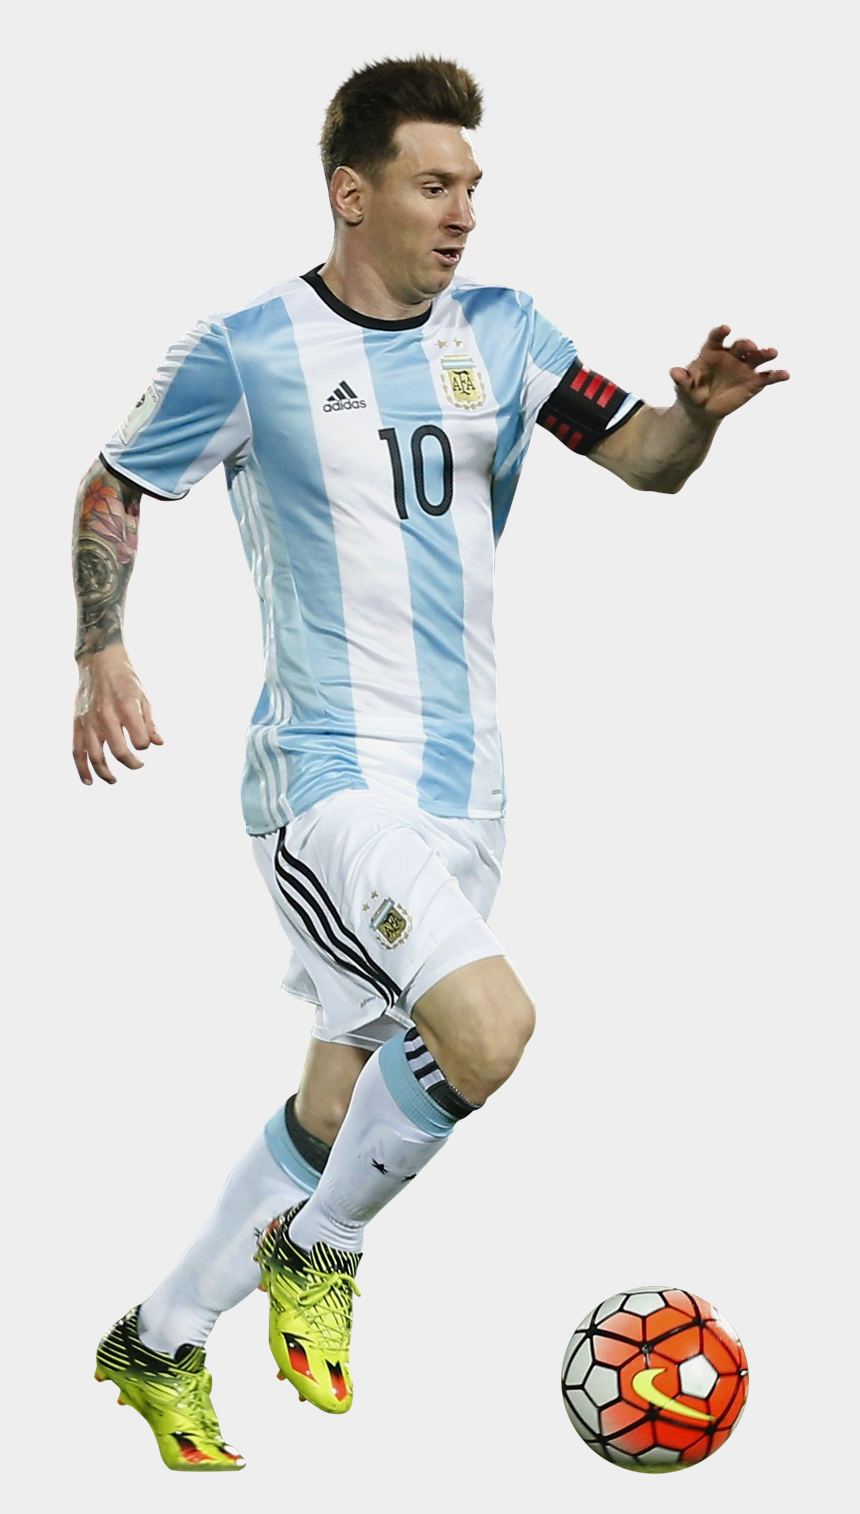 jersey clipart, Cartoons - Messi National Football Team Argentina Sport Jersey - Messi Png In Argentina